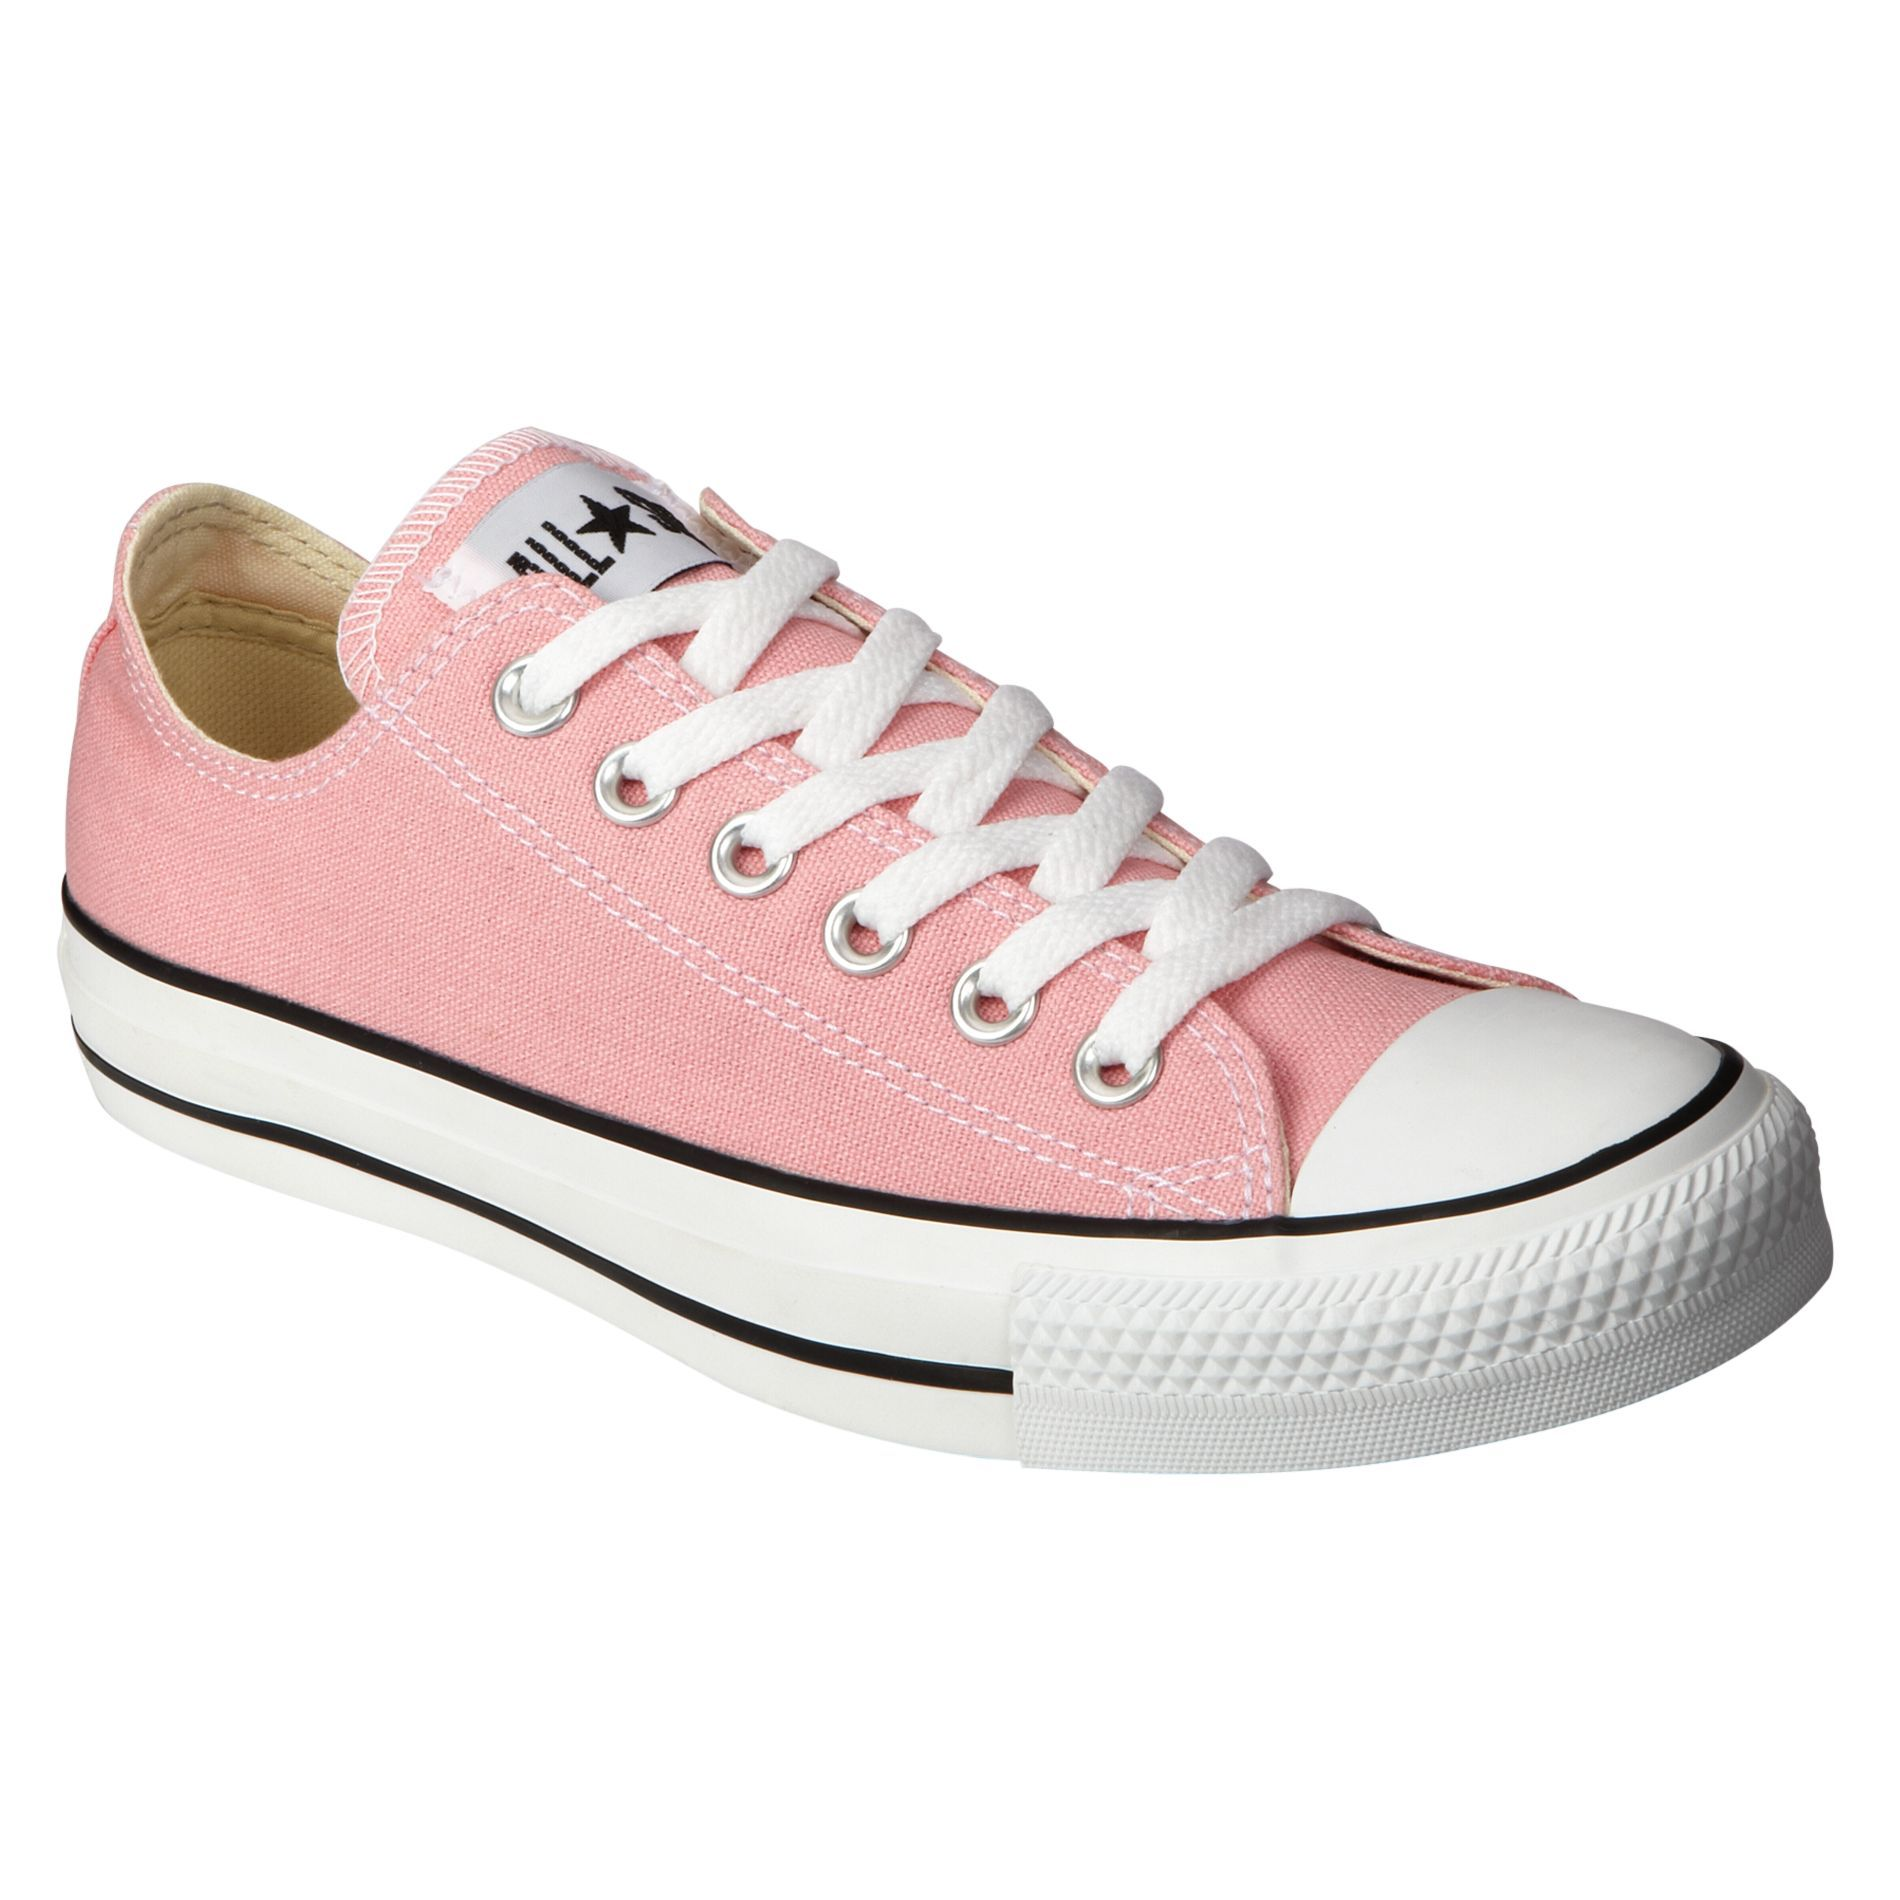 Pink Chuck Taylor All Star Limited Edition D Ring Natural Faint Ox Low Top  Canvas Shoesconverse hi tops saleconverse hi tops cheapcompetitive price